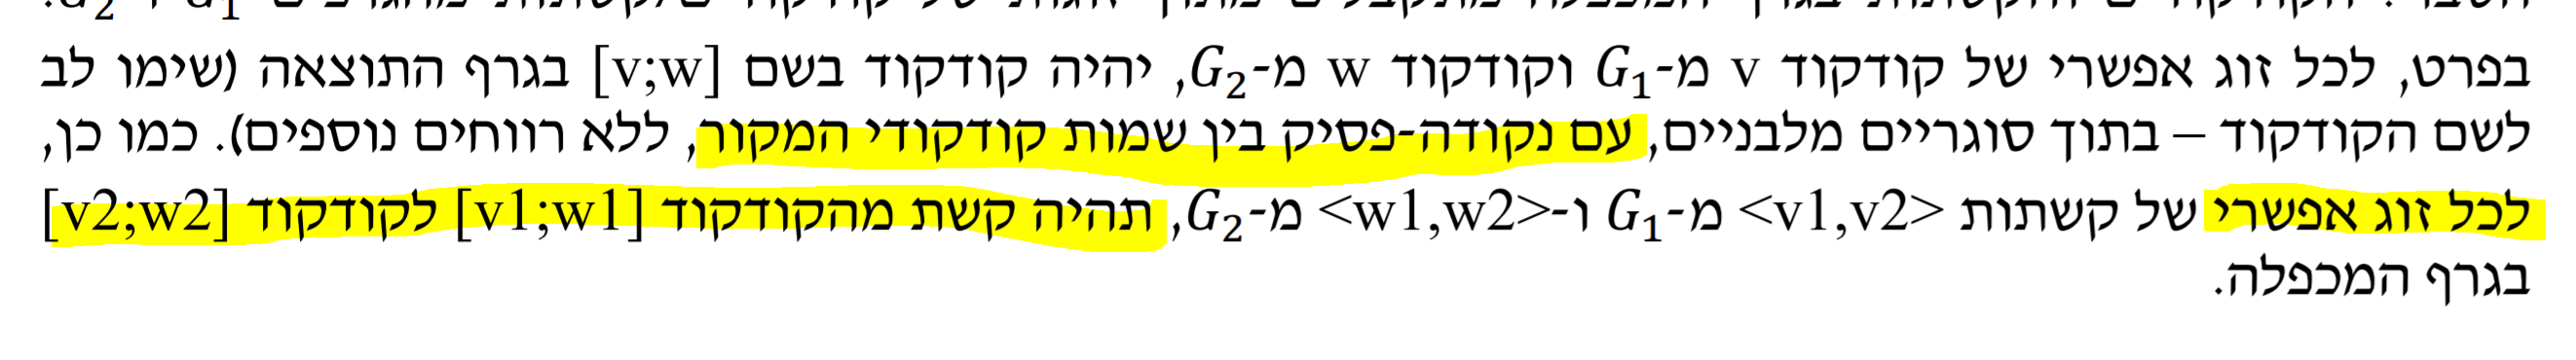 Attachment שאלה על מכפלה.PNG